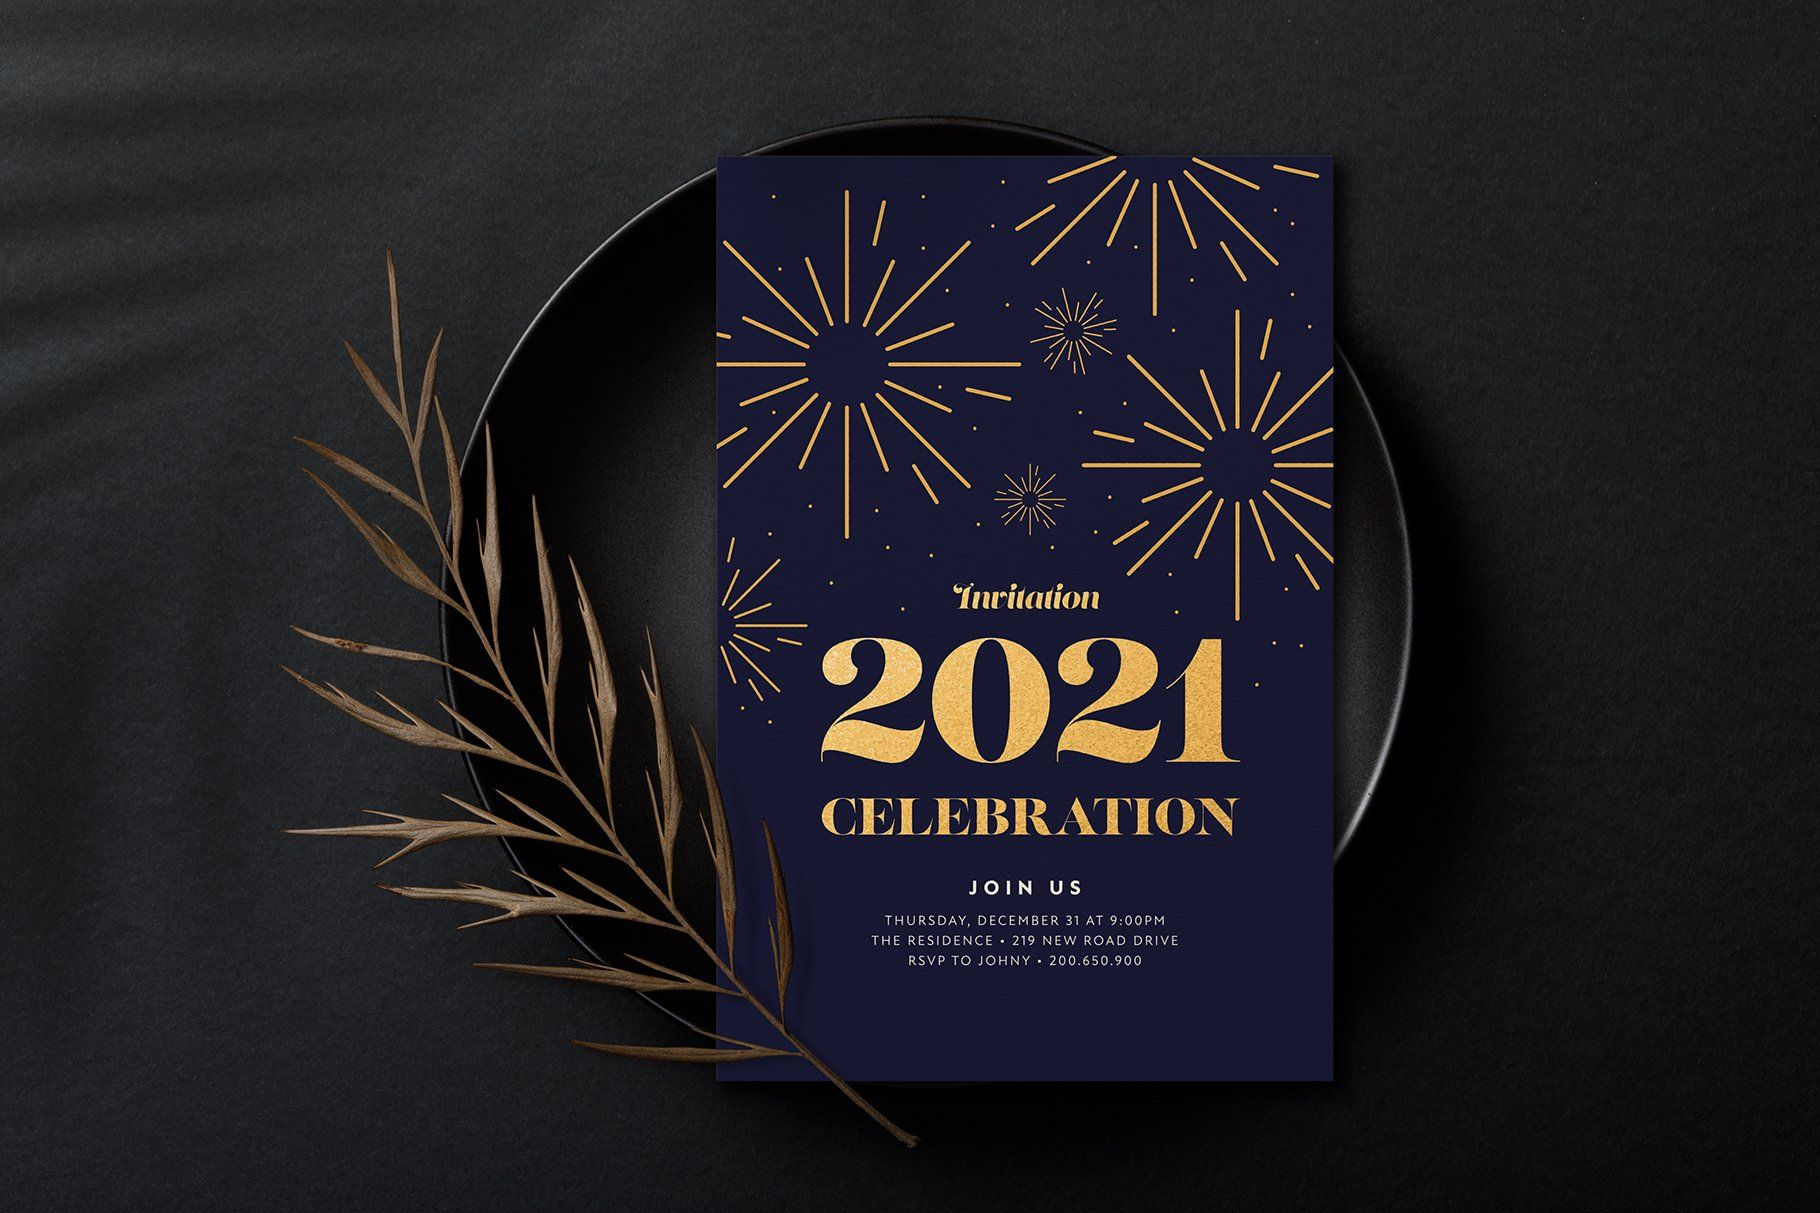 2021 New Year Party Chic Invitation In 2021 Chic Invitation New Years Party New Years Eve Invitations